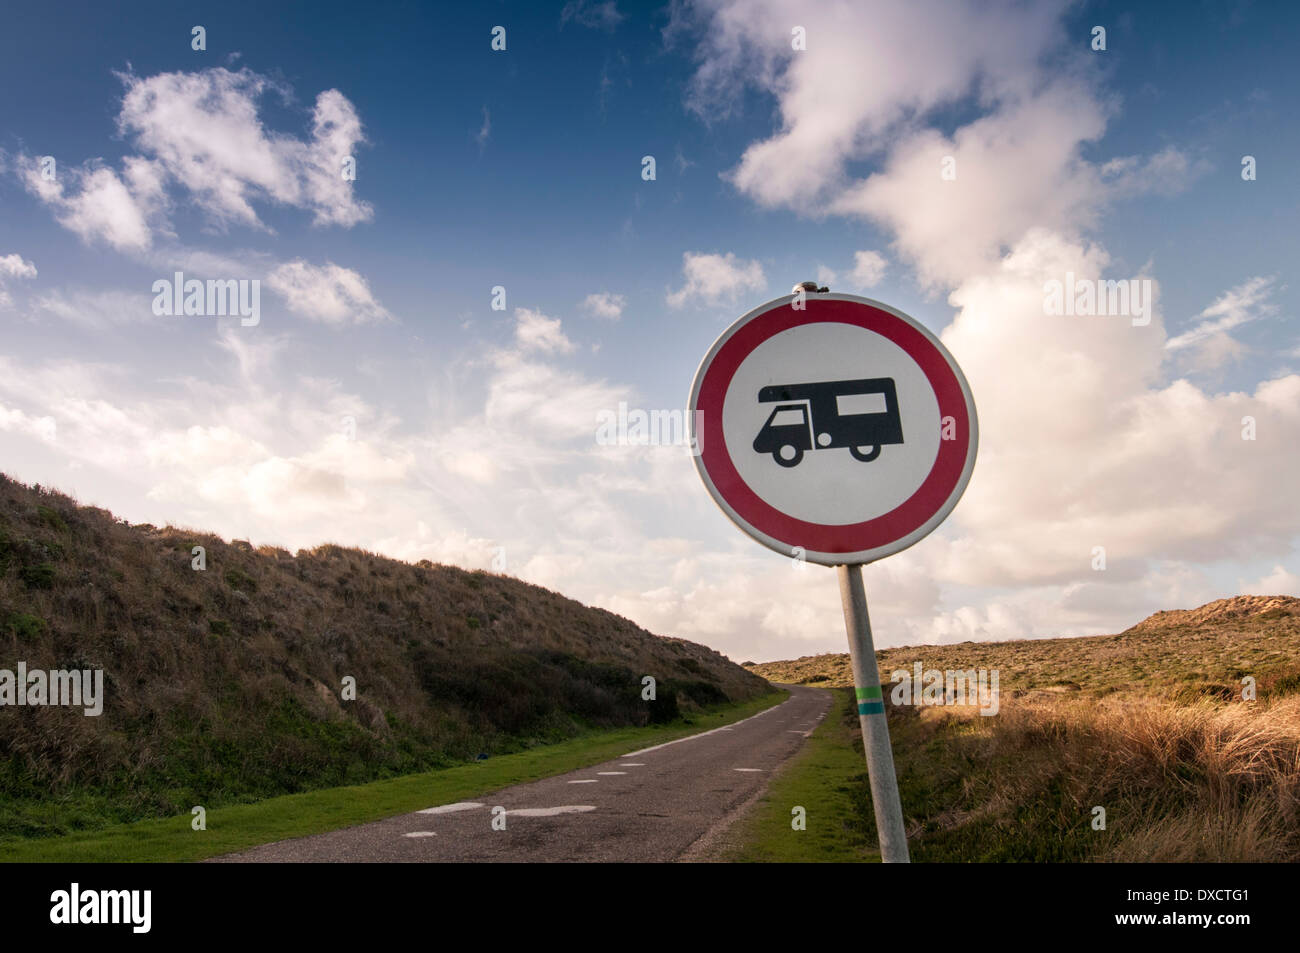 motorhomes permitted sign - Stock Image